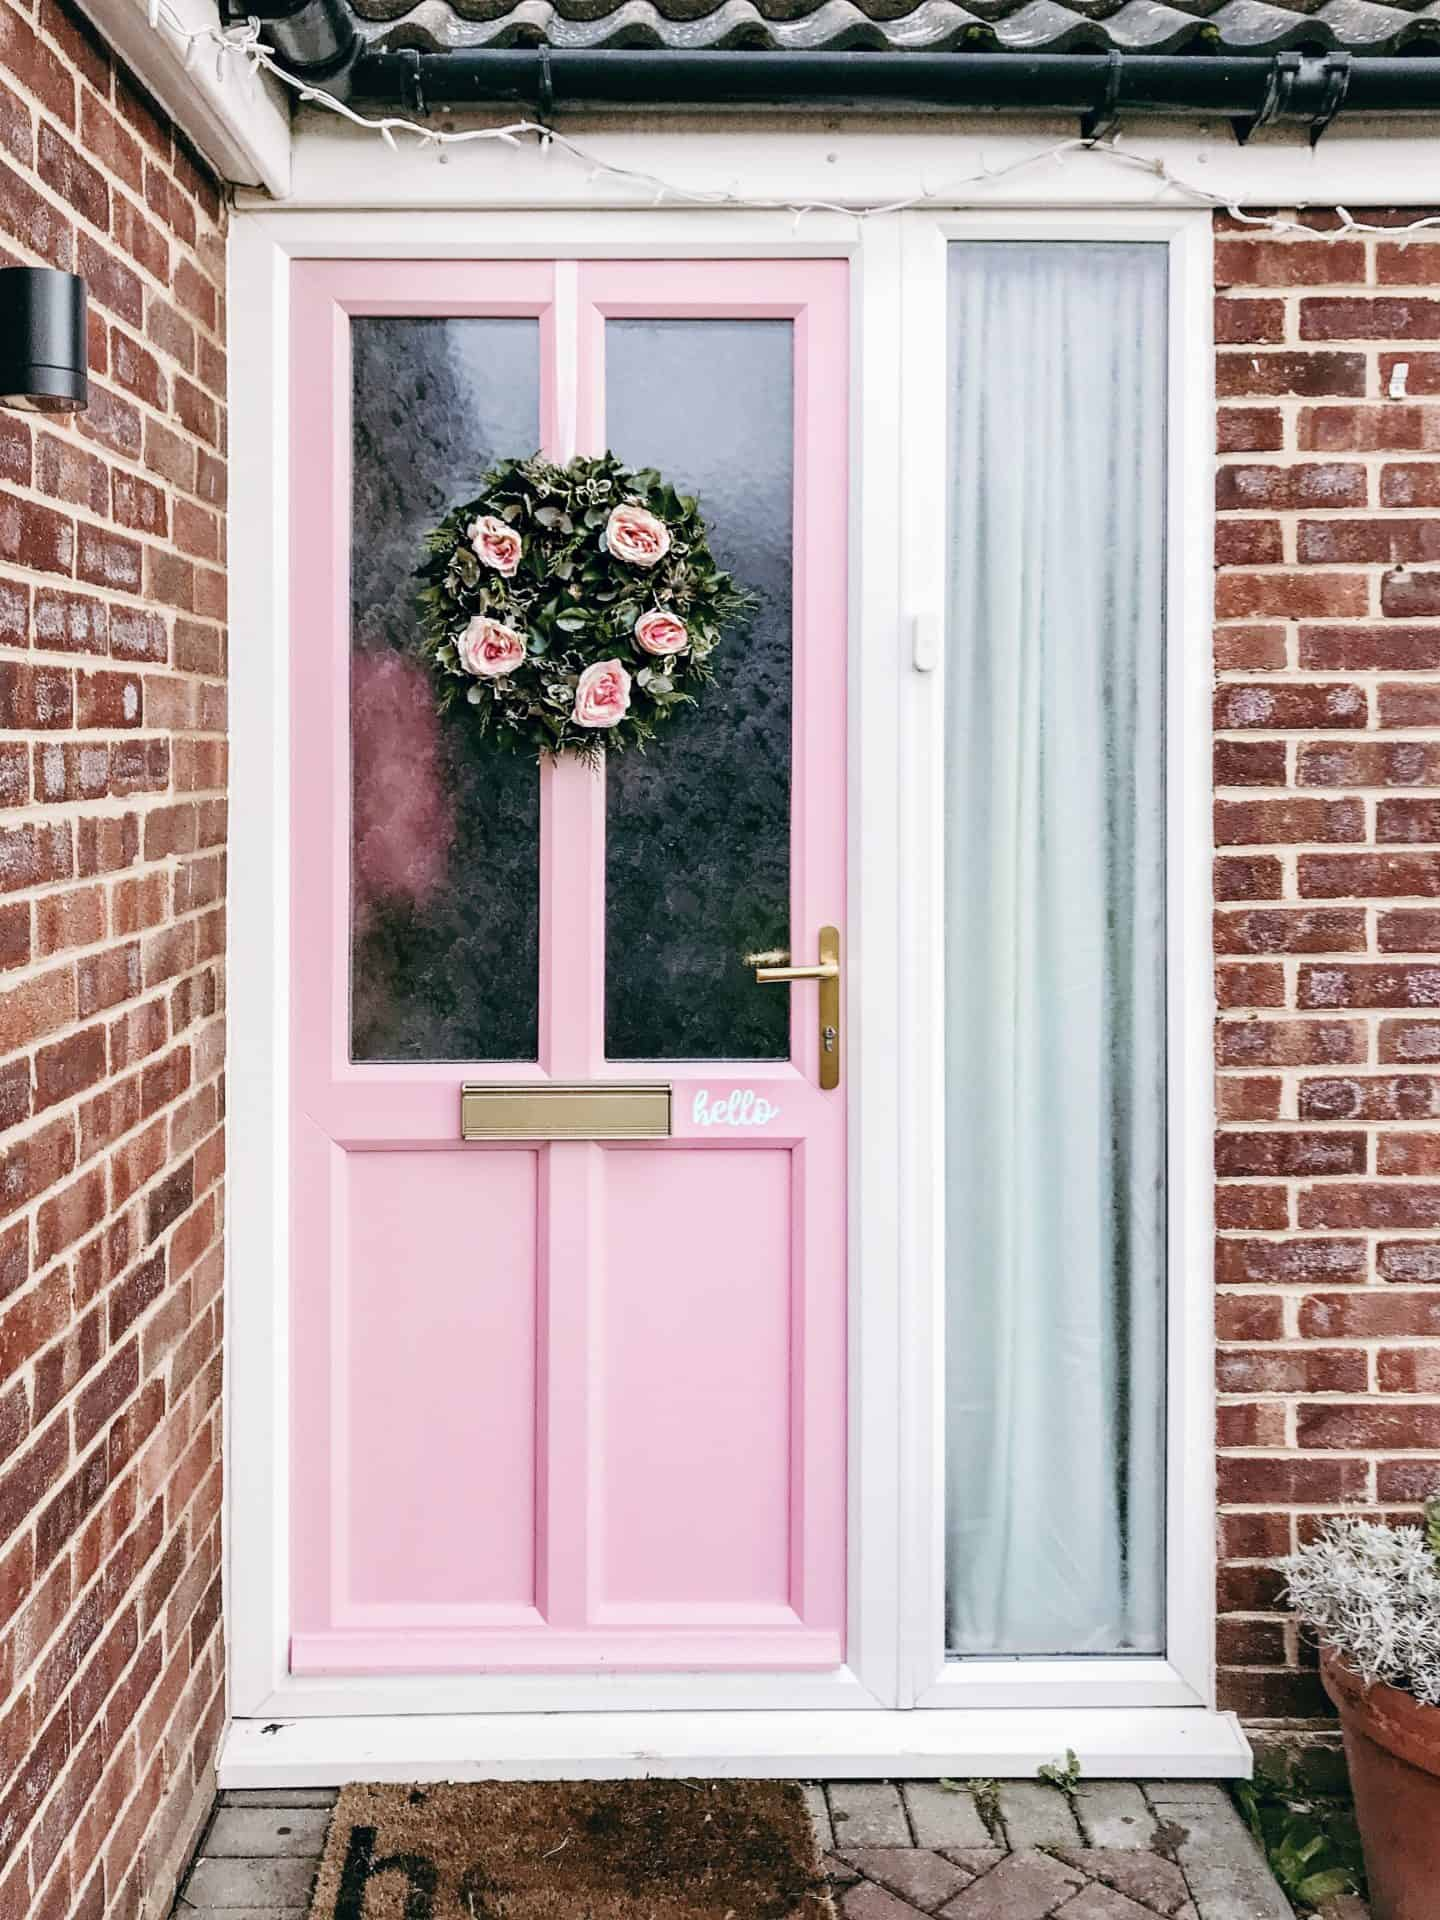 Pink front door with green and pink hand made Christmas wreath